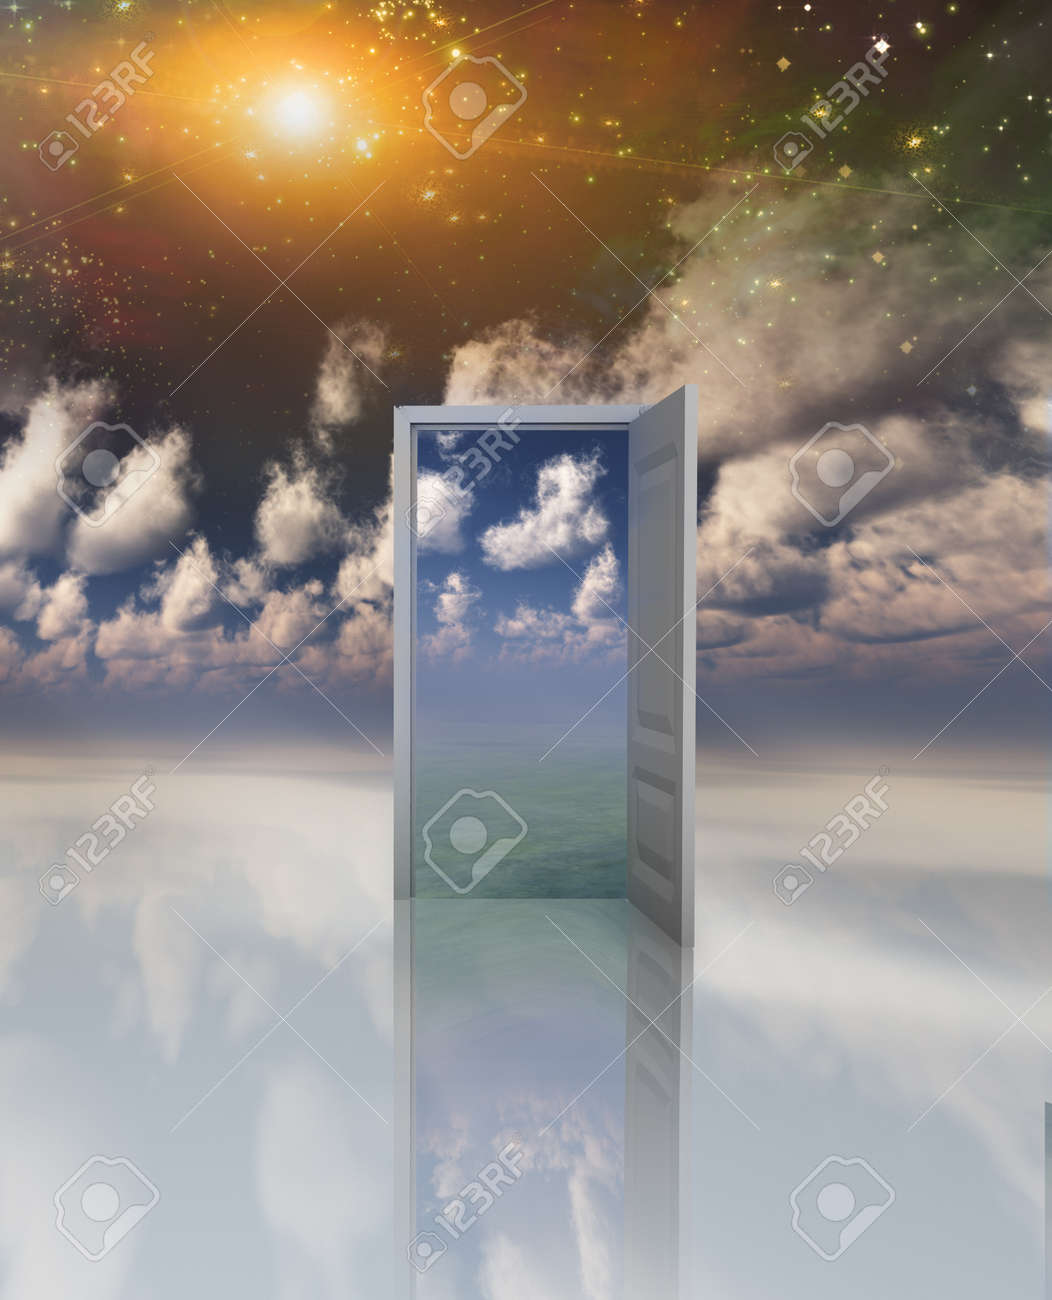 Doorway in serene space opens into other realm Stock Photo - 9222922